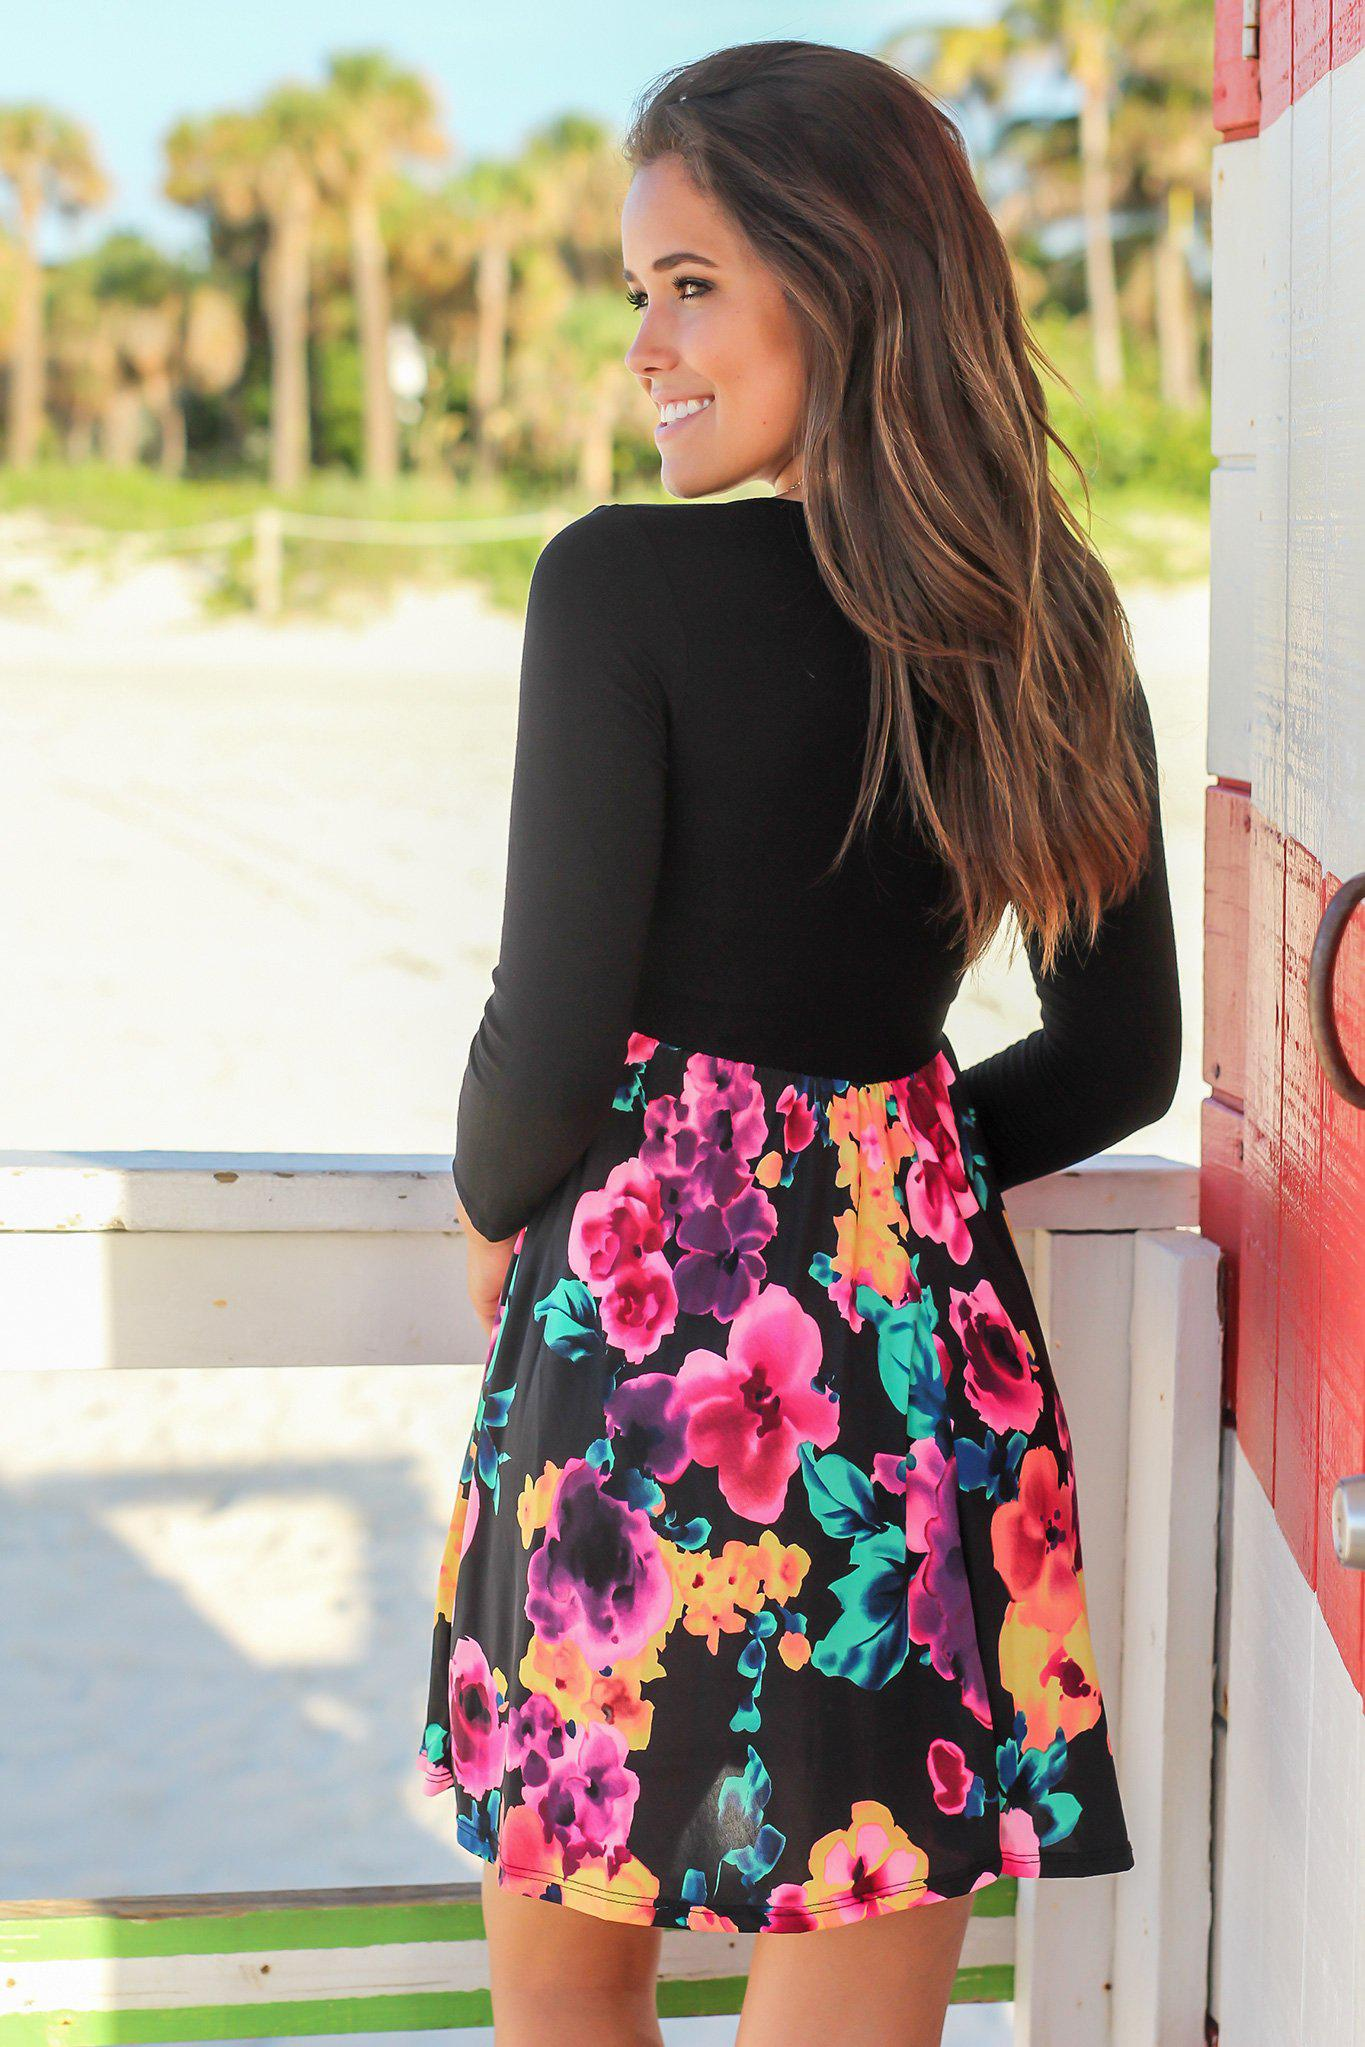 Floral Short Dress with Black Top and 3/4 Sleeves